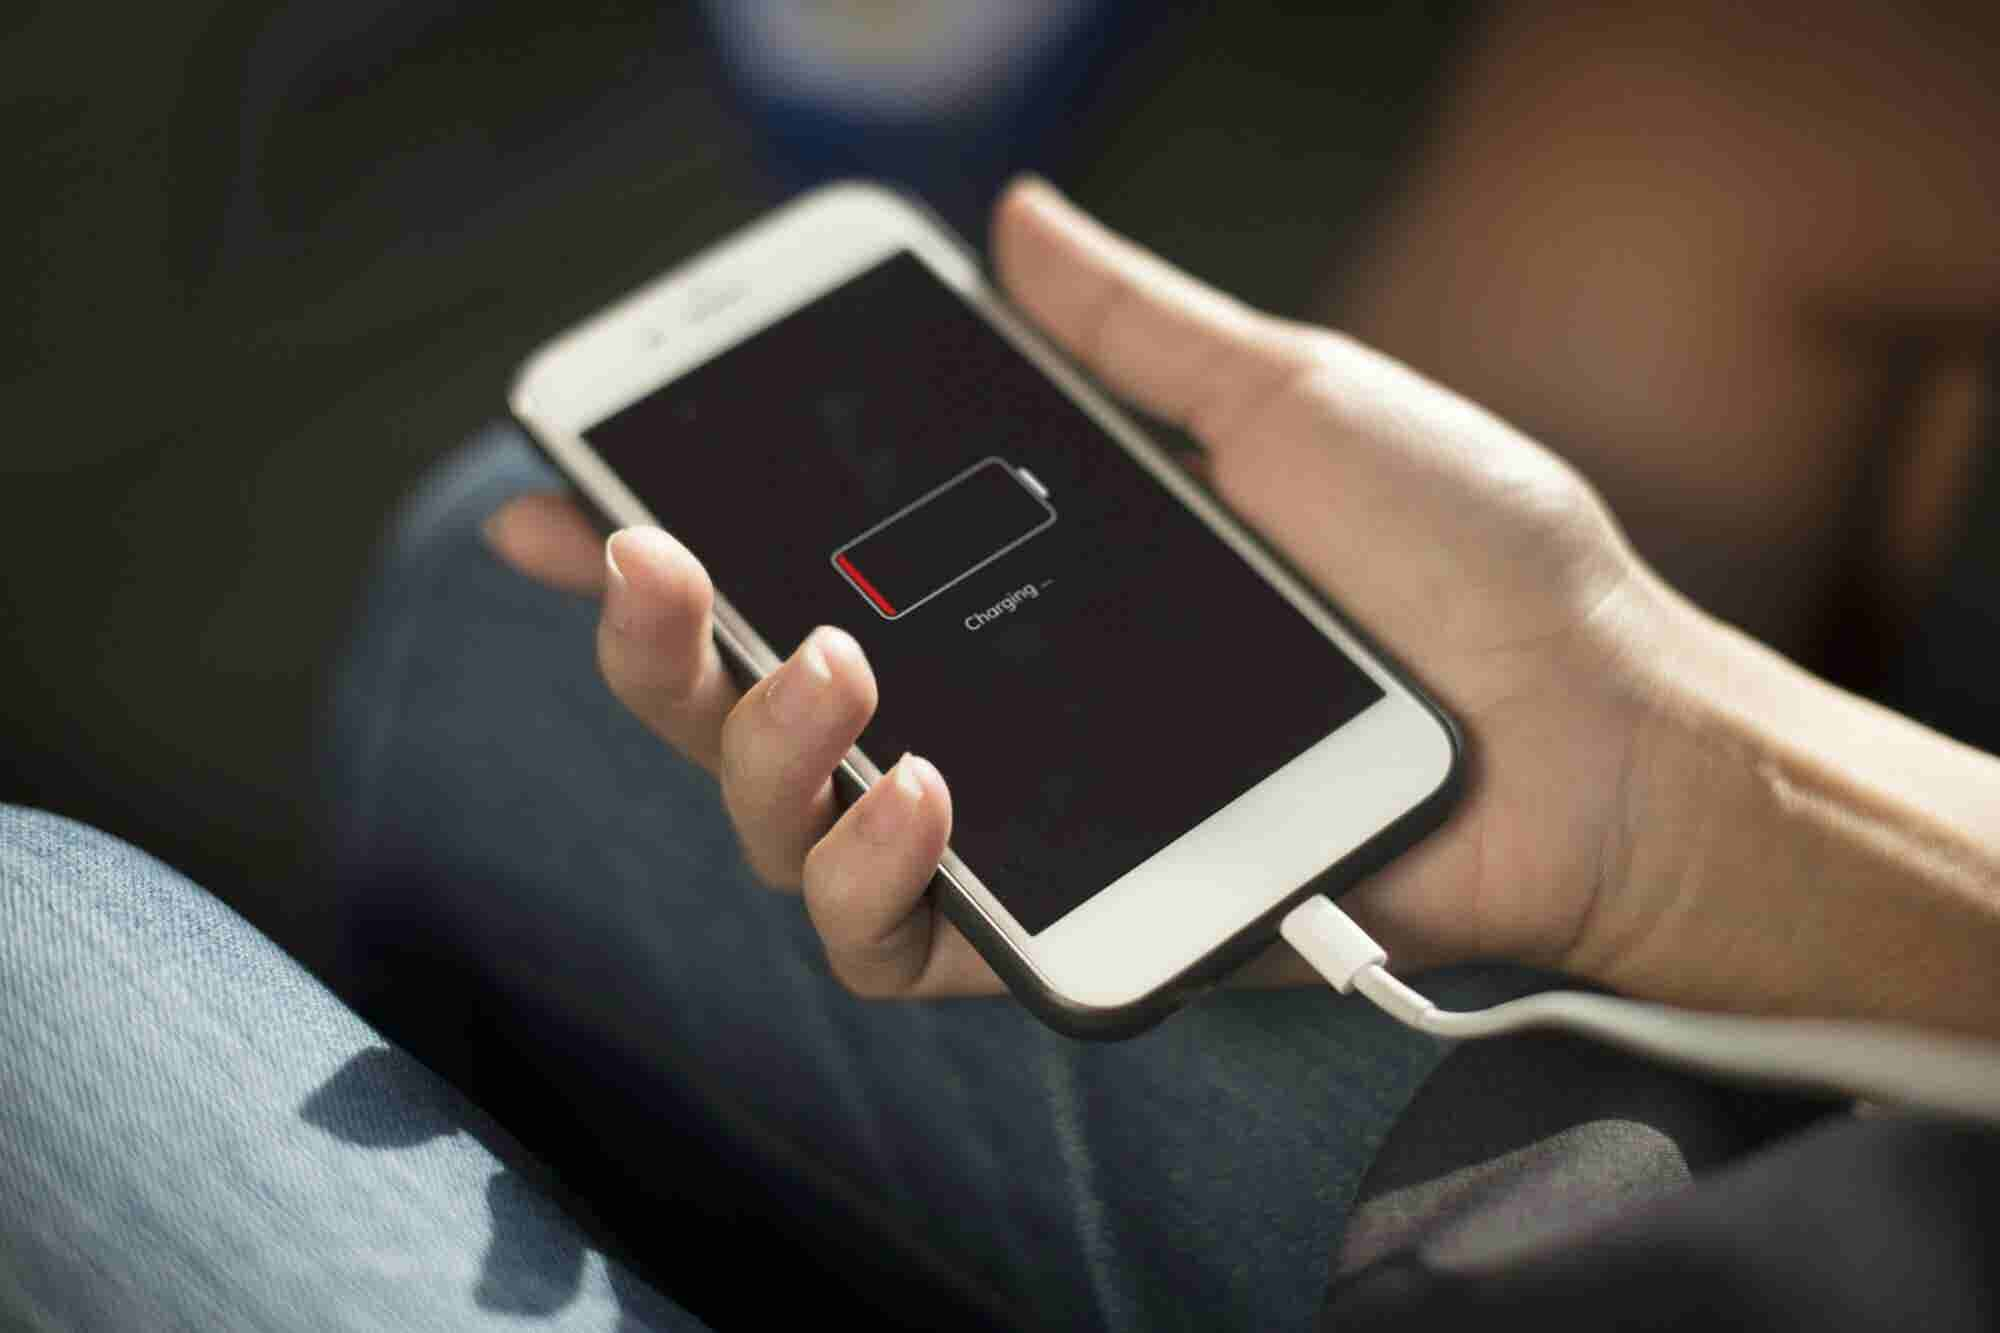 High Power Battery In Smartphones Is The Sweet Spot That Can Change The User's Experience